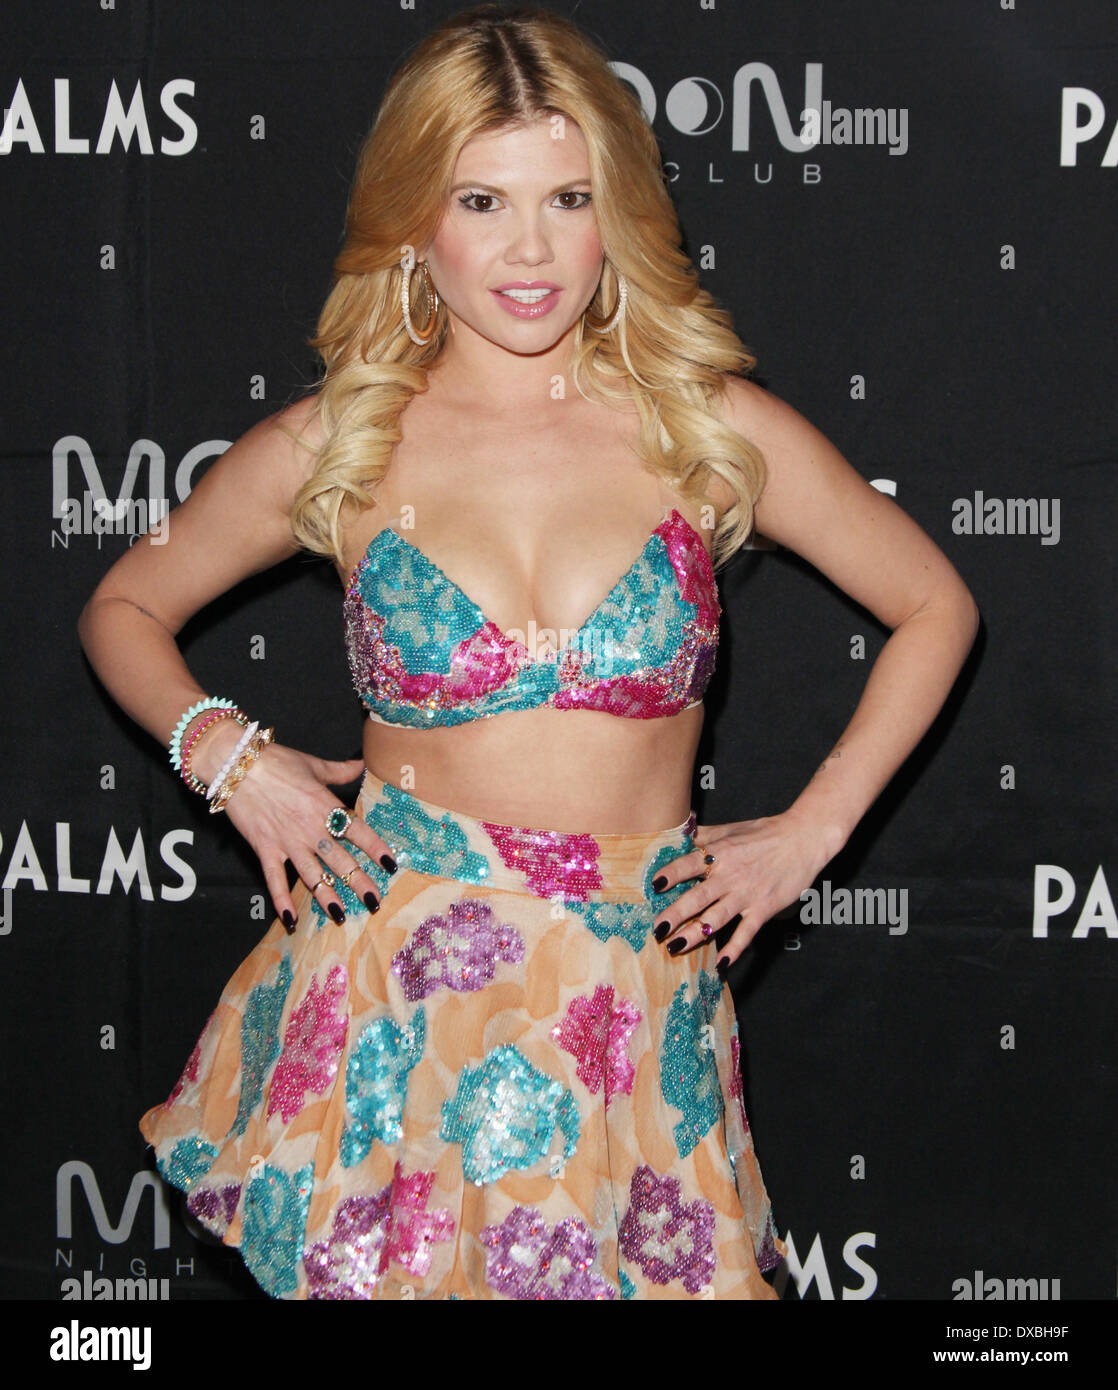 Las Vegas, Nevada, USA. 23rd Mar, 2014. Chanel West Coast performs from her new mixtape ''Now You Know'' inside Moon Nightclub on March 22, 2014 at the Palms Casino Resort in Las Vegas, Nevada. Credit:  Marcel Thomas/ZUMAPRESS.com/Alamy Live News - Stock Image